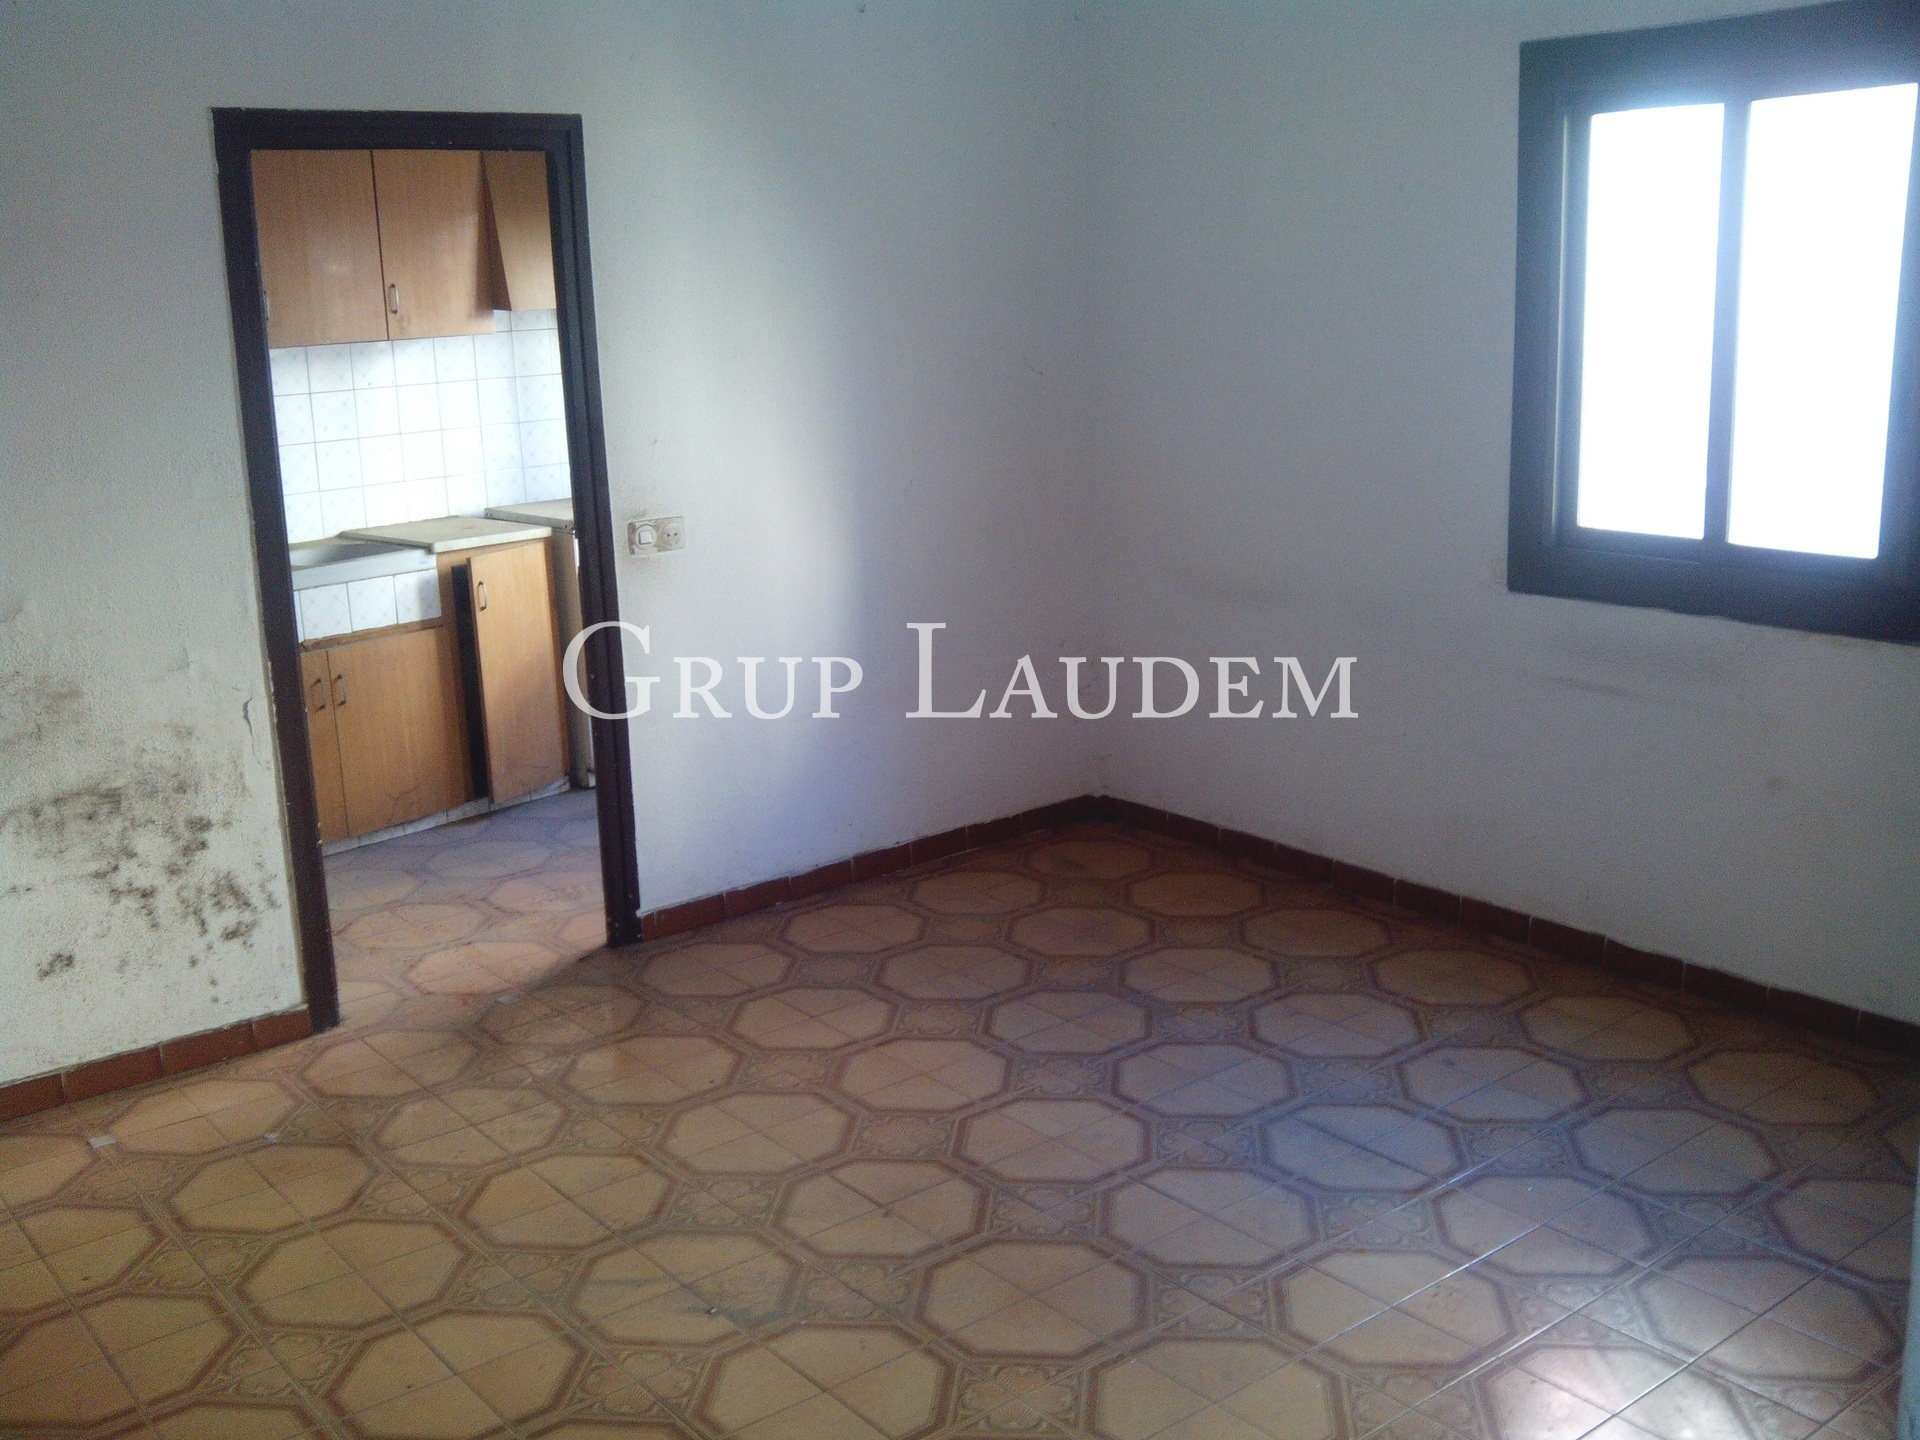 Flat for sale in Cerdanyola